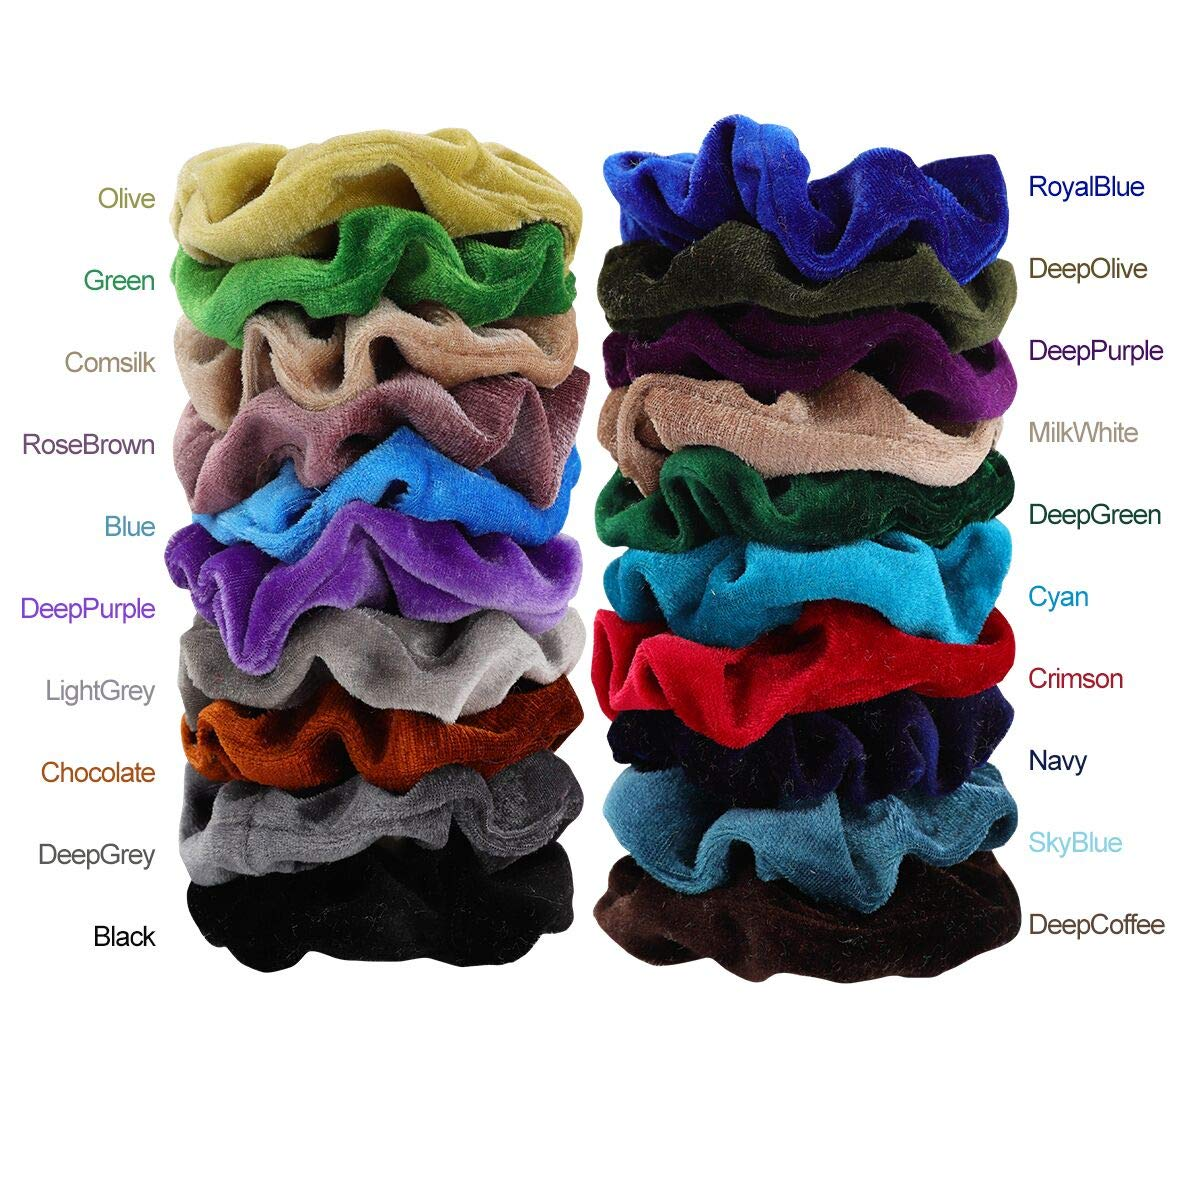 Mandydov 40pcs Hair Scrunchies Velvet Elastic Hair Bands Scrunchy Hair Ties Ropes 40 Pack Scrunchies for Women or Girls Hair Accessories - 40 Assorted Colors Scrunchies by Mandydov (Image #5)